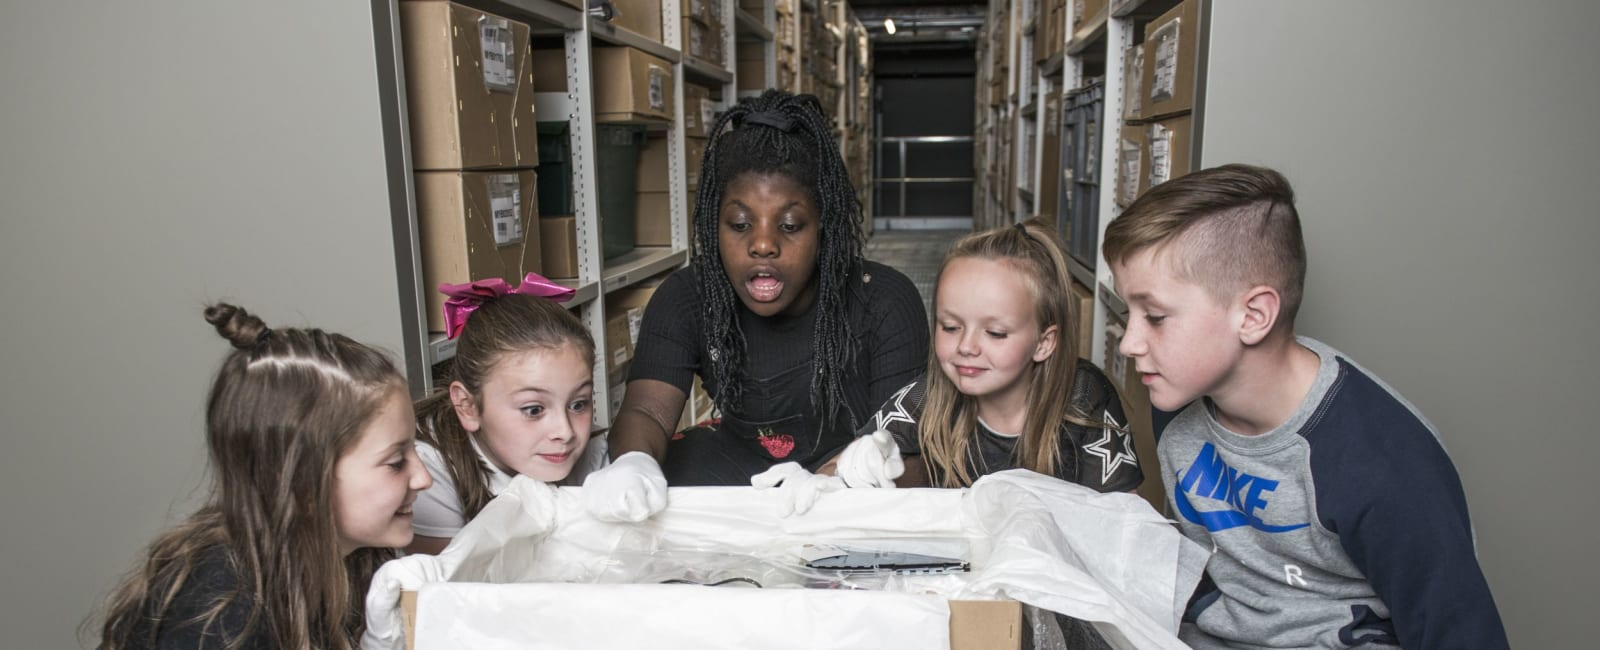 Grant Award to Support School Visits to Refurbished Burrell Collection